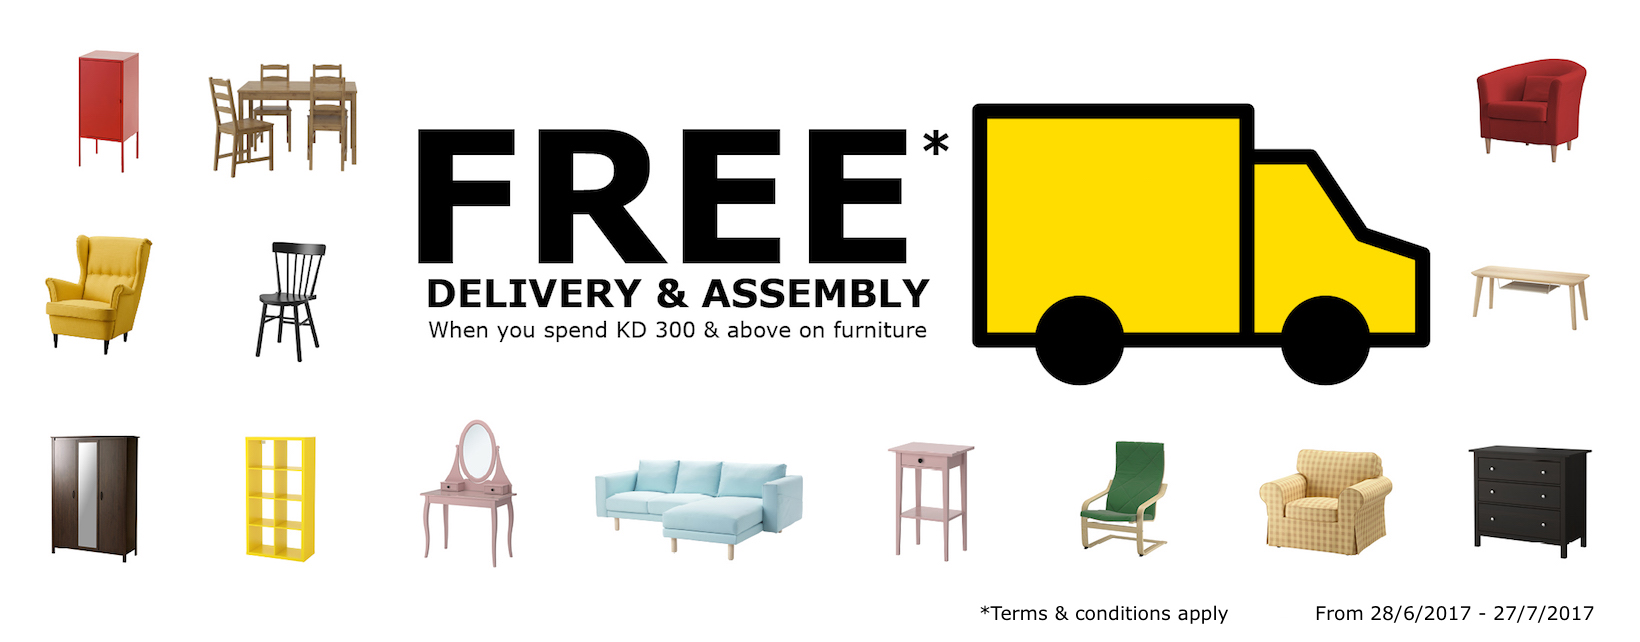 Free delivery and assembly offer